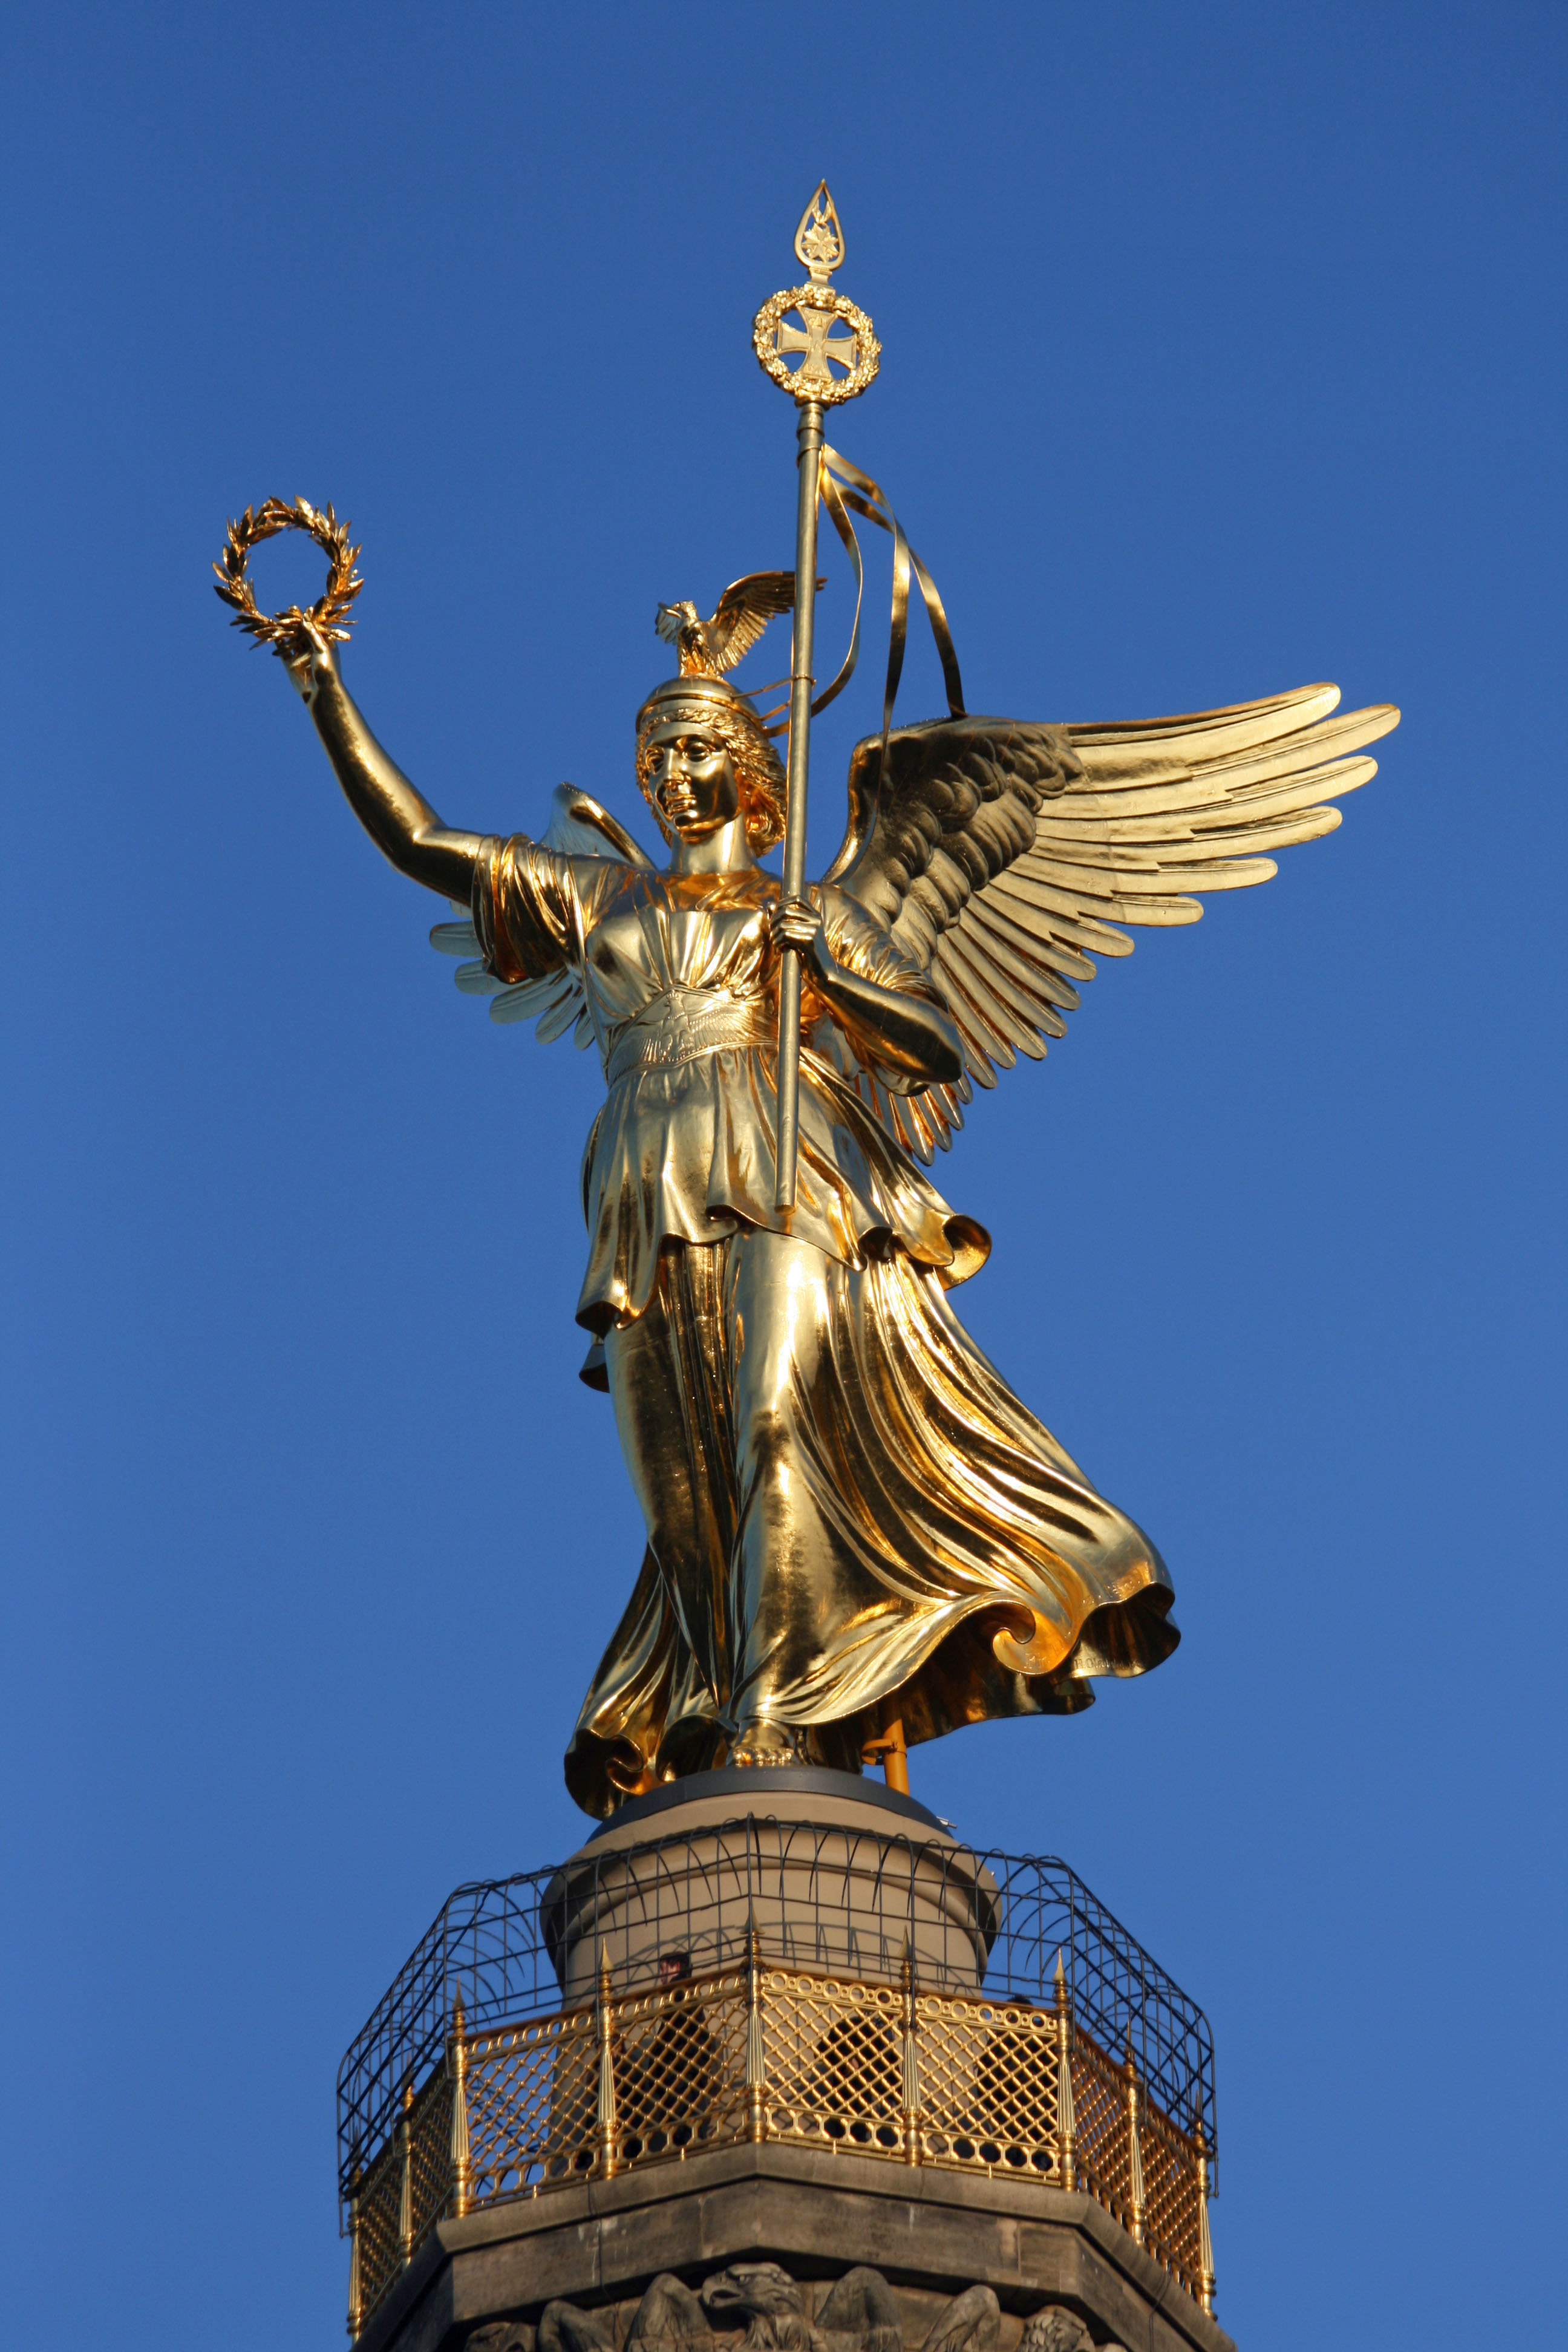 Gold Else, a statue of the goddess of victory, atop the Siegessäule (Victory Column) in Berlin